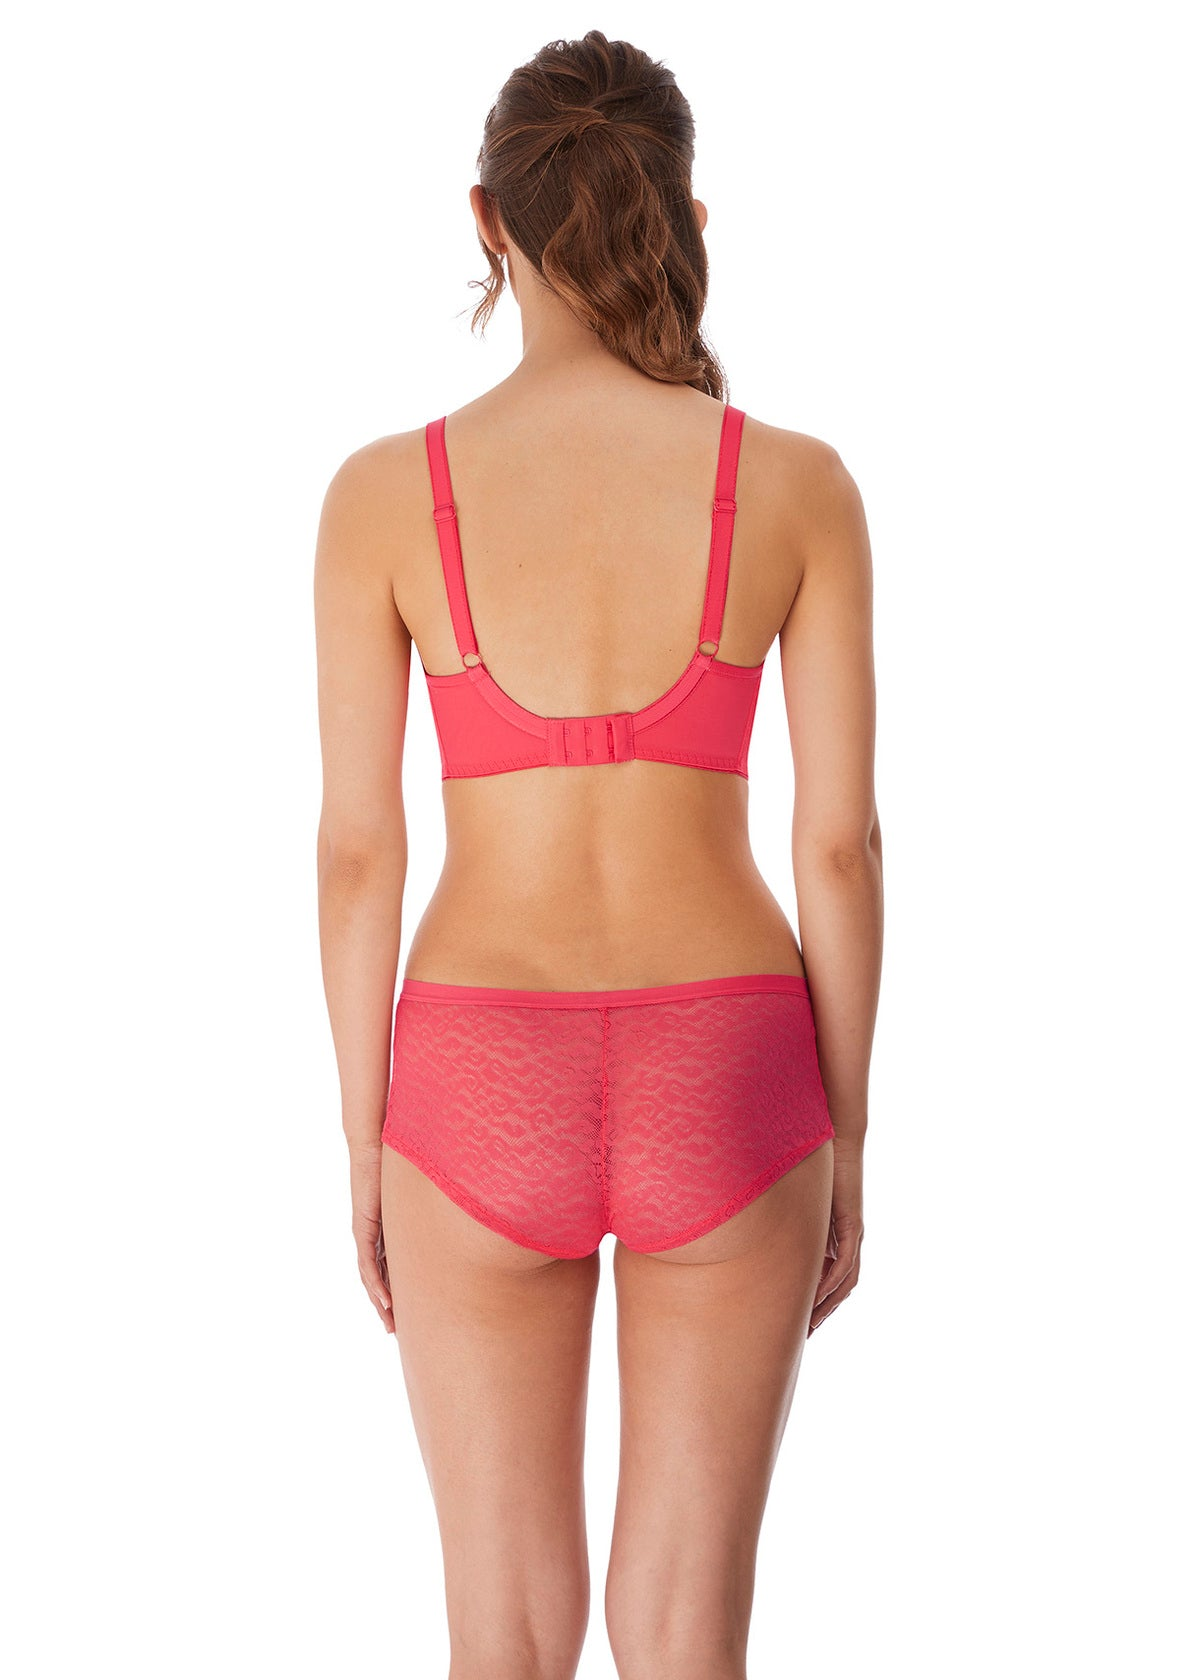 AA1015SCL Freya Fancies Hipster Short |SUGAR CORAL|